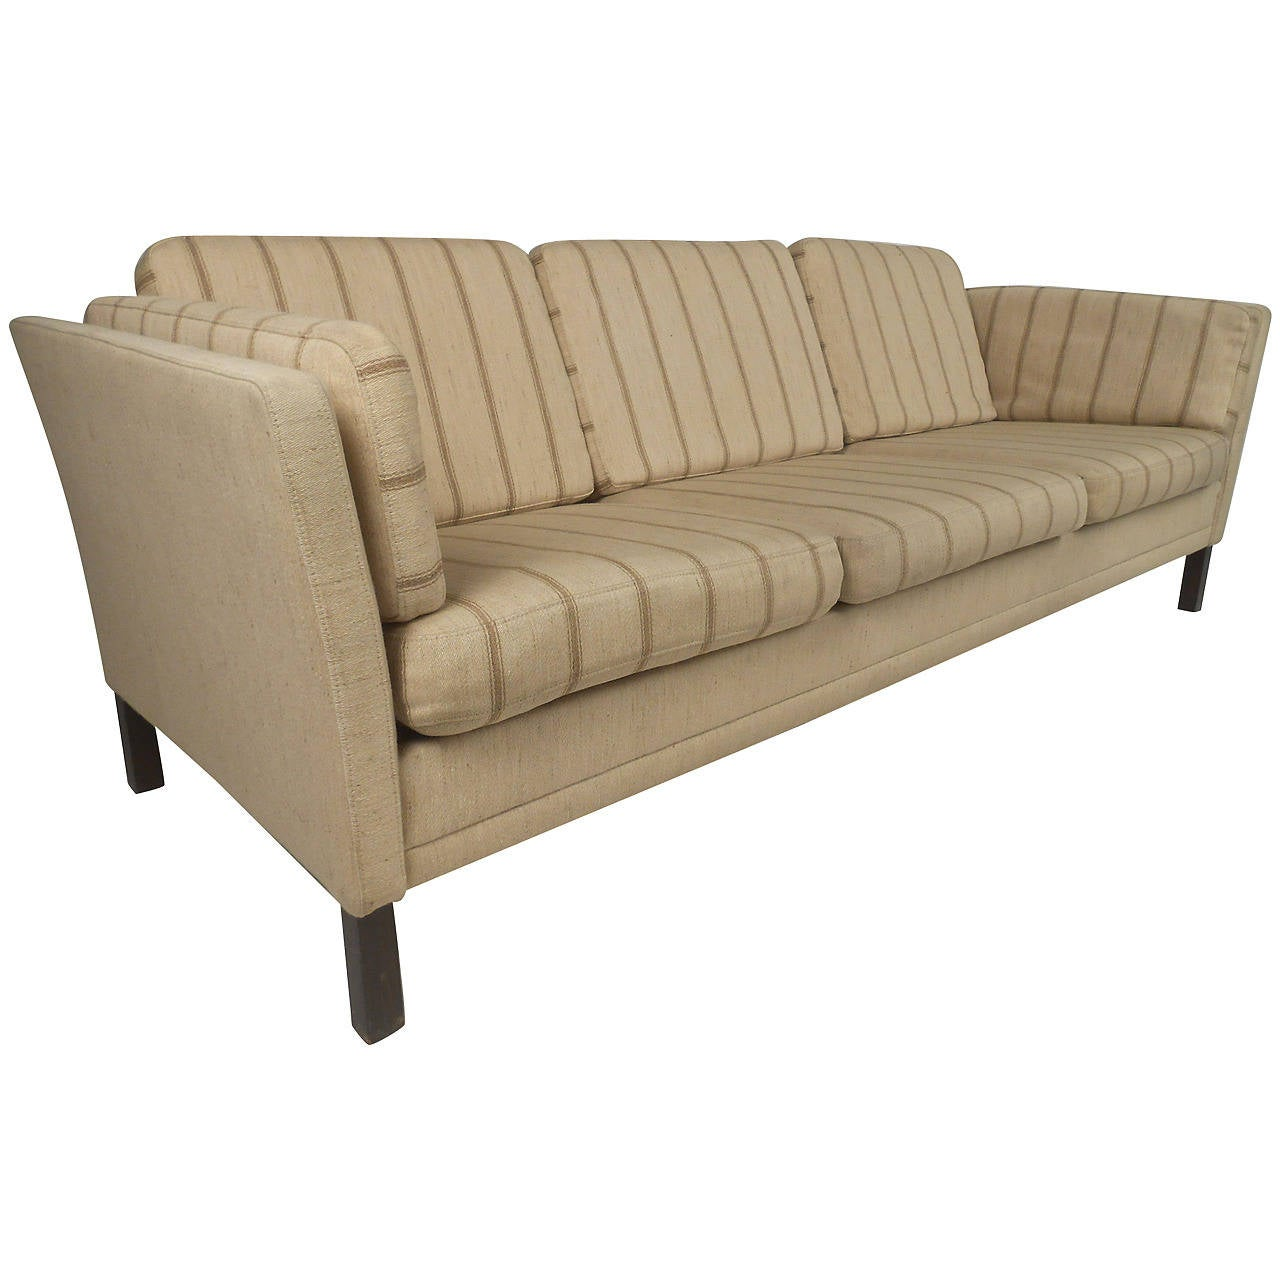 Stunning Danish Modern Three-Seat Sofa